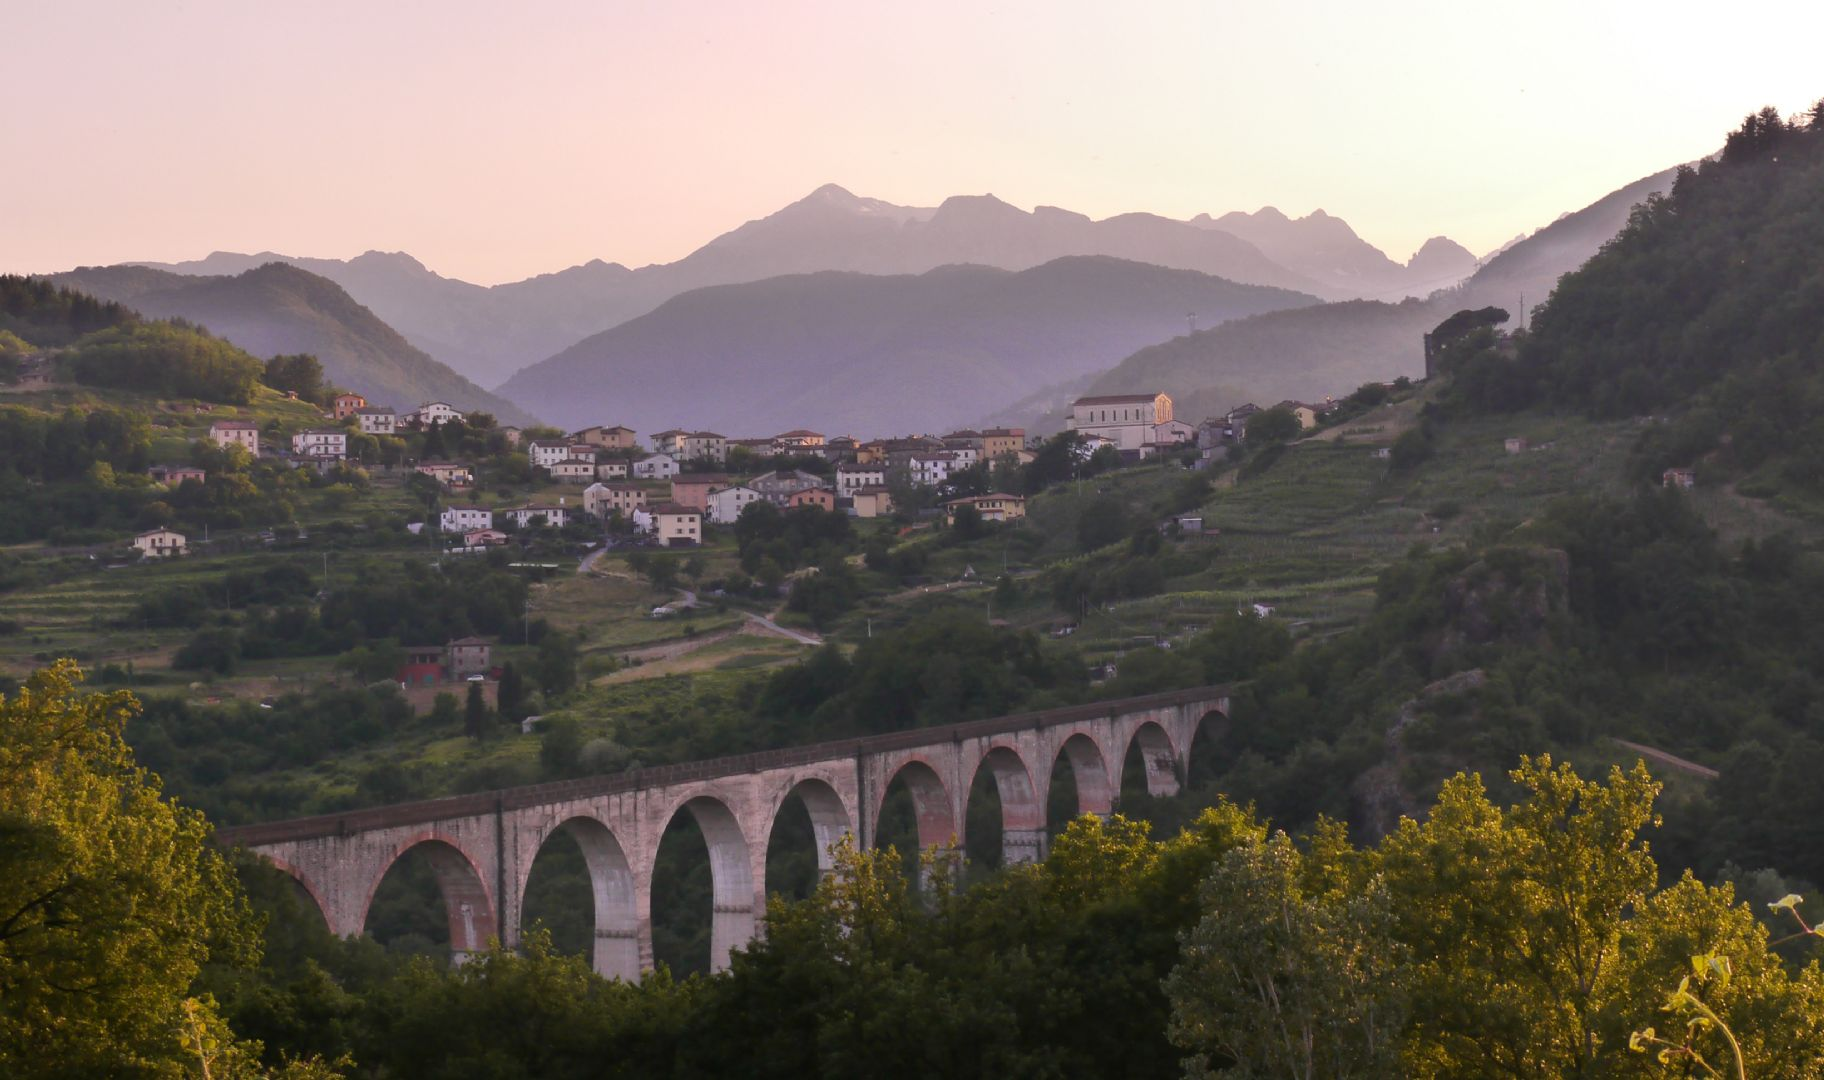 Villetta Viaduct.jpg - Italy - Tuscany - Secret Apennine Trails - Italia Mountain Biking